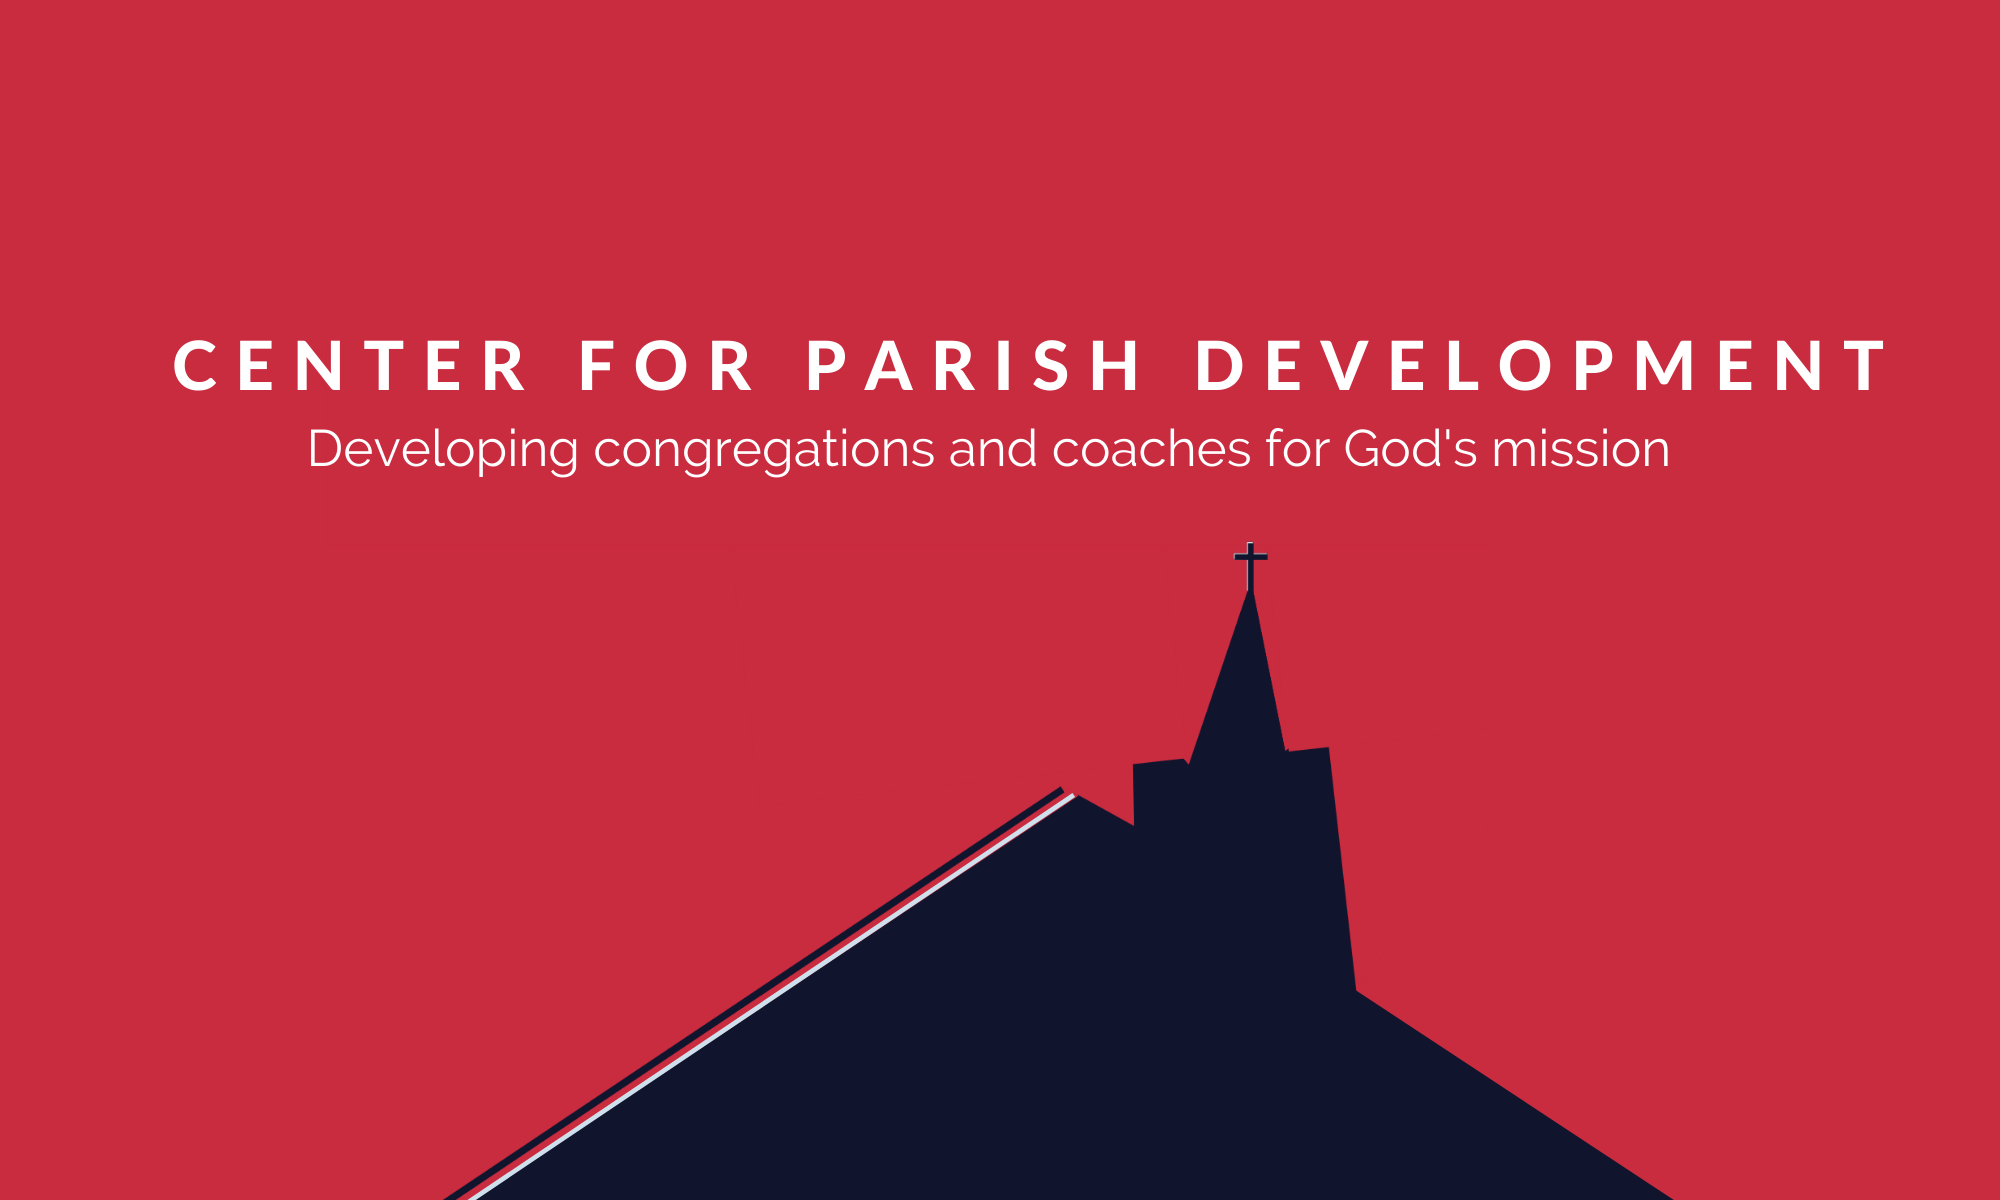 Center for Parish Development